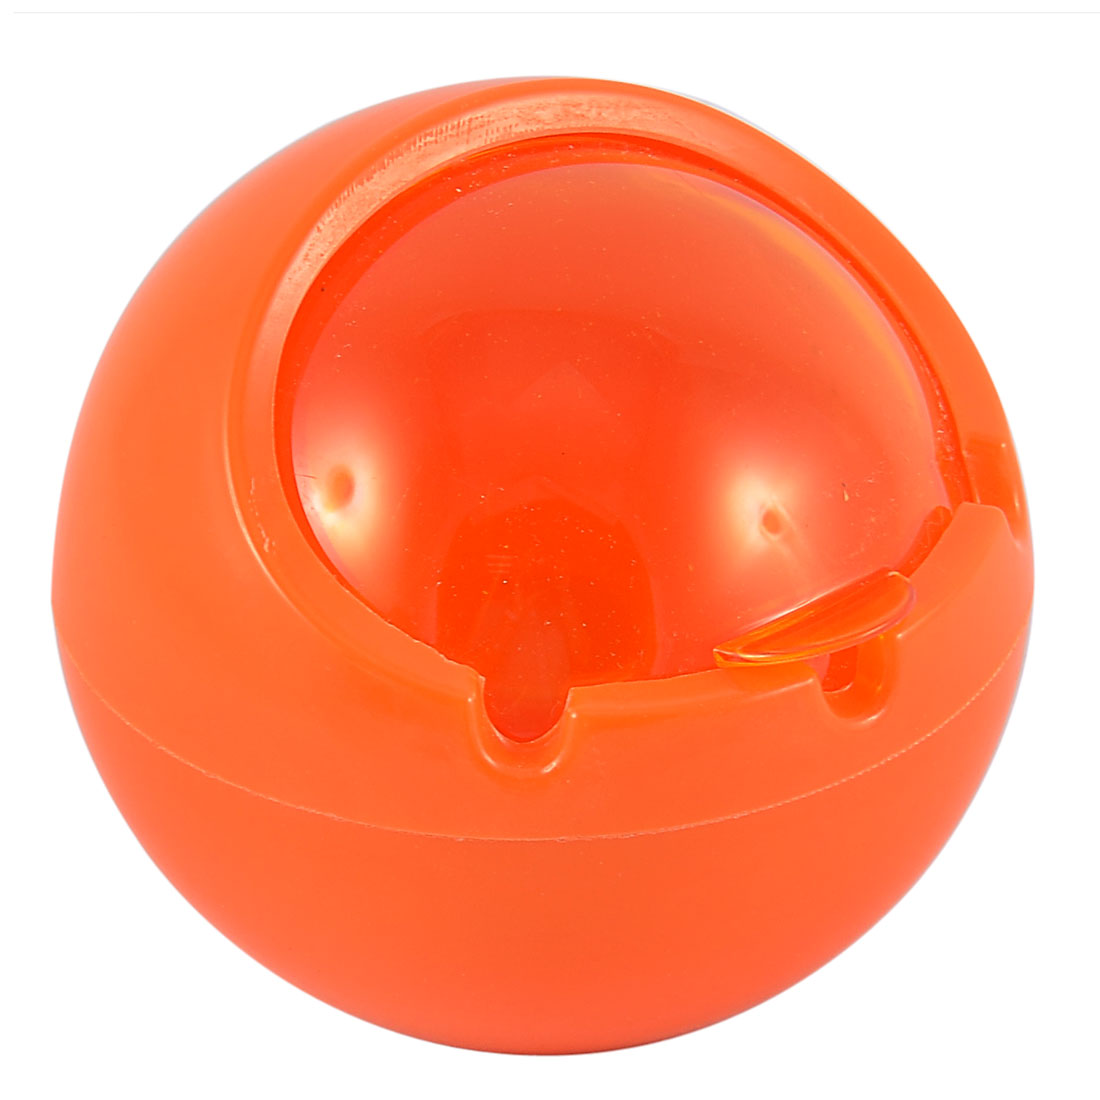 Plastic Ball Shaped Home Office Cigarette Ash Holder Cup Case Ashtray Orange